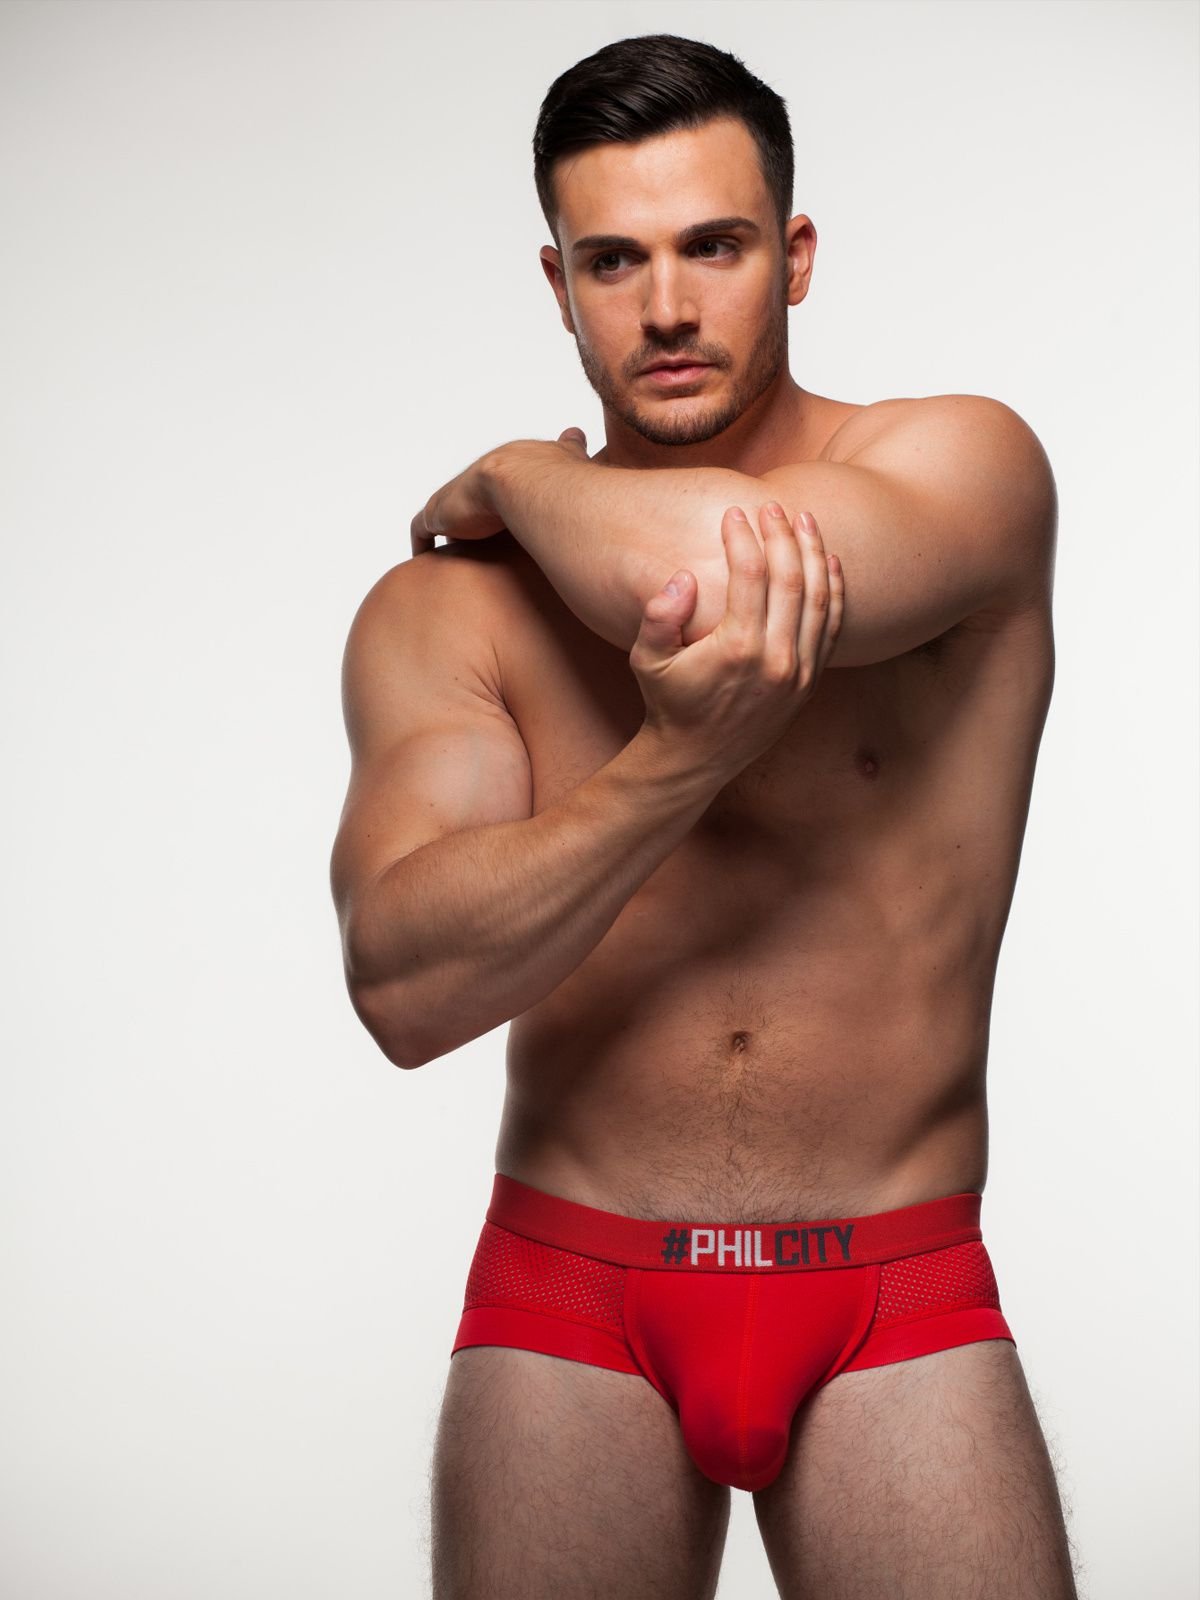 Philcity Underwear ..more